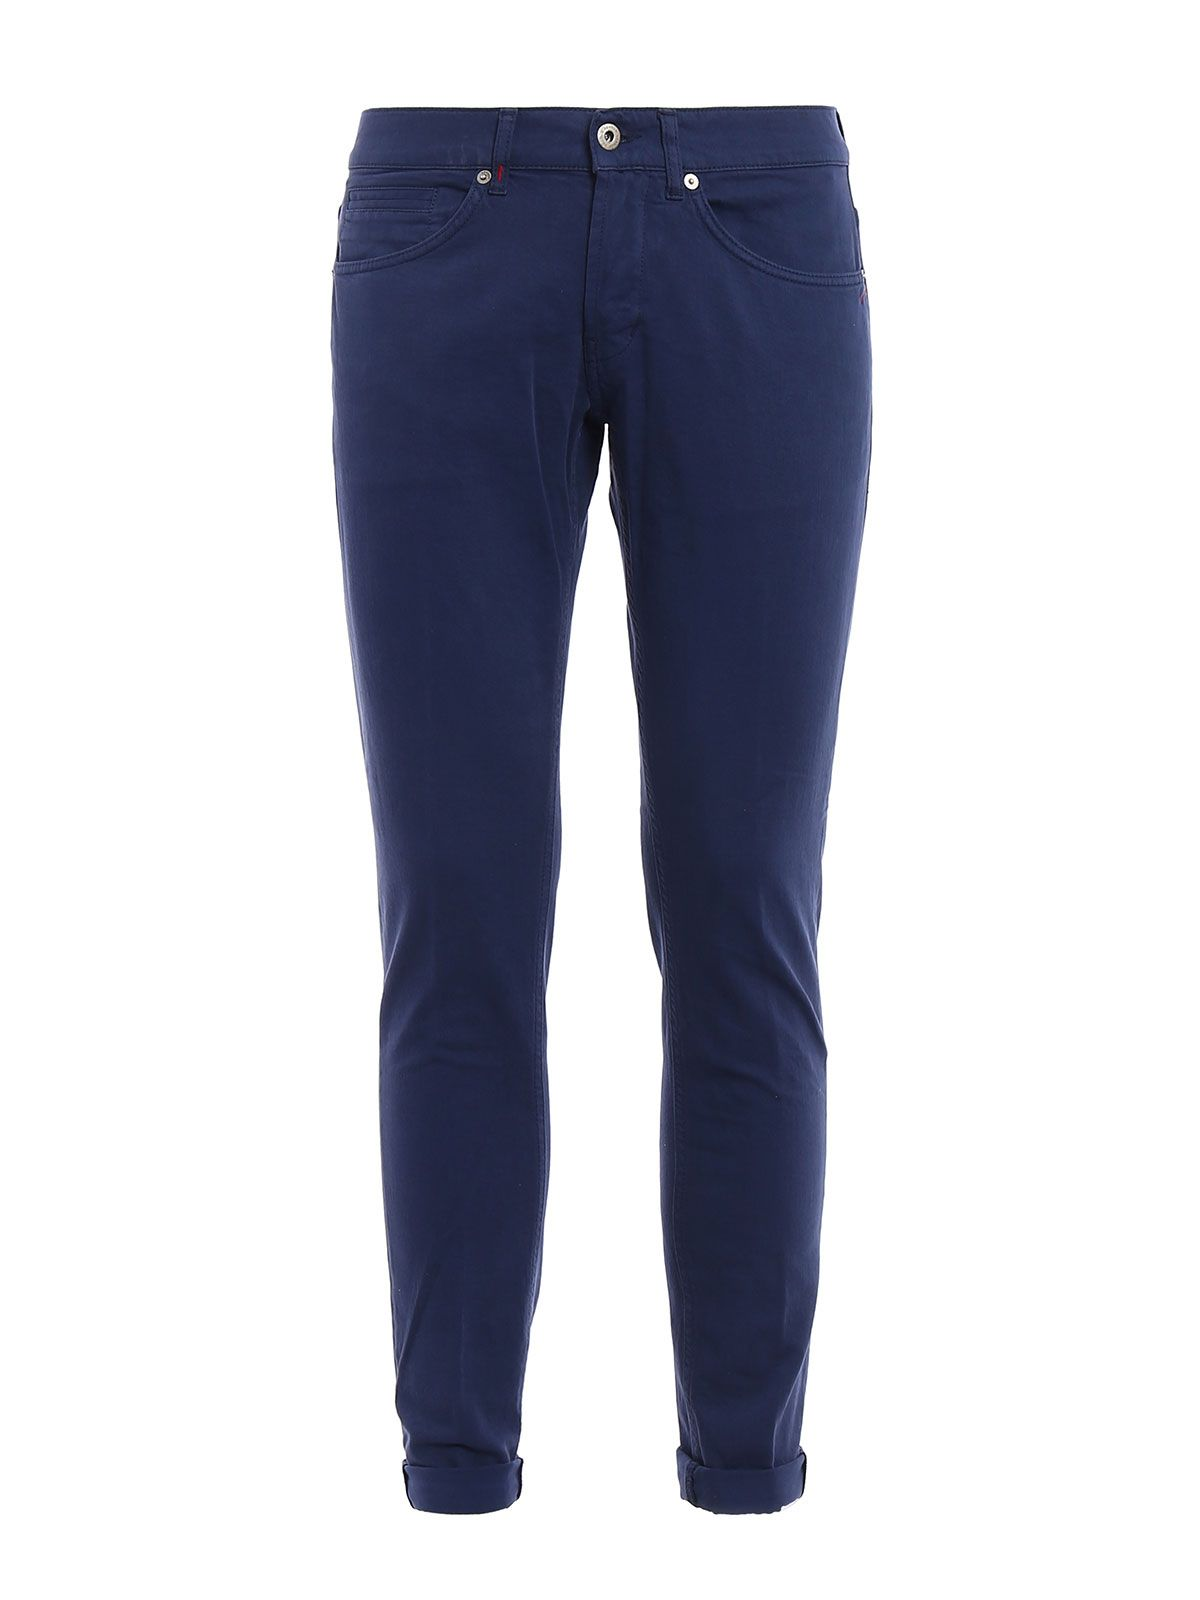 George Skinny Fit Cotton Trousers